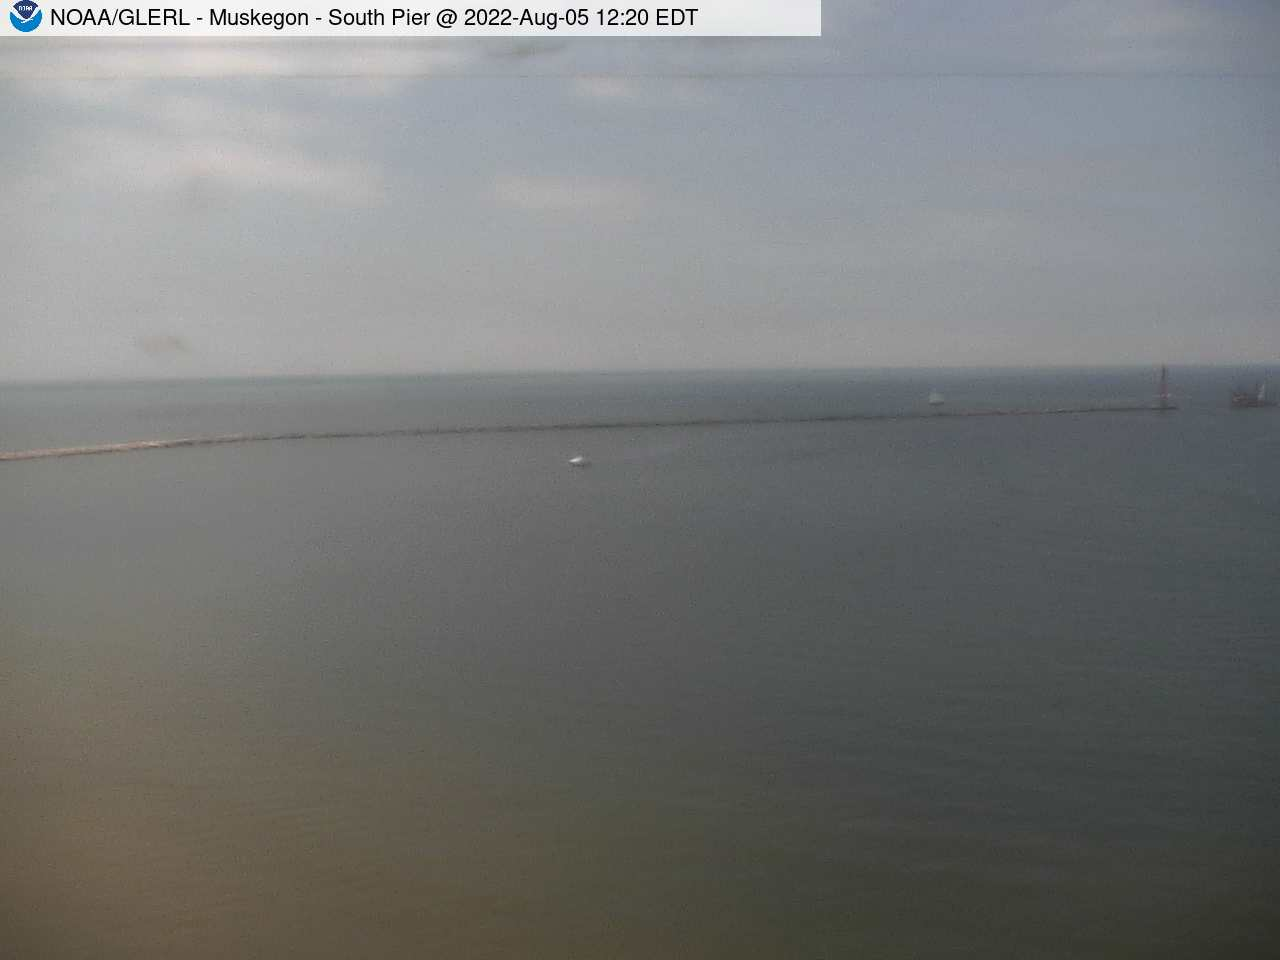 View of Long view of main Muskegon lighthouse